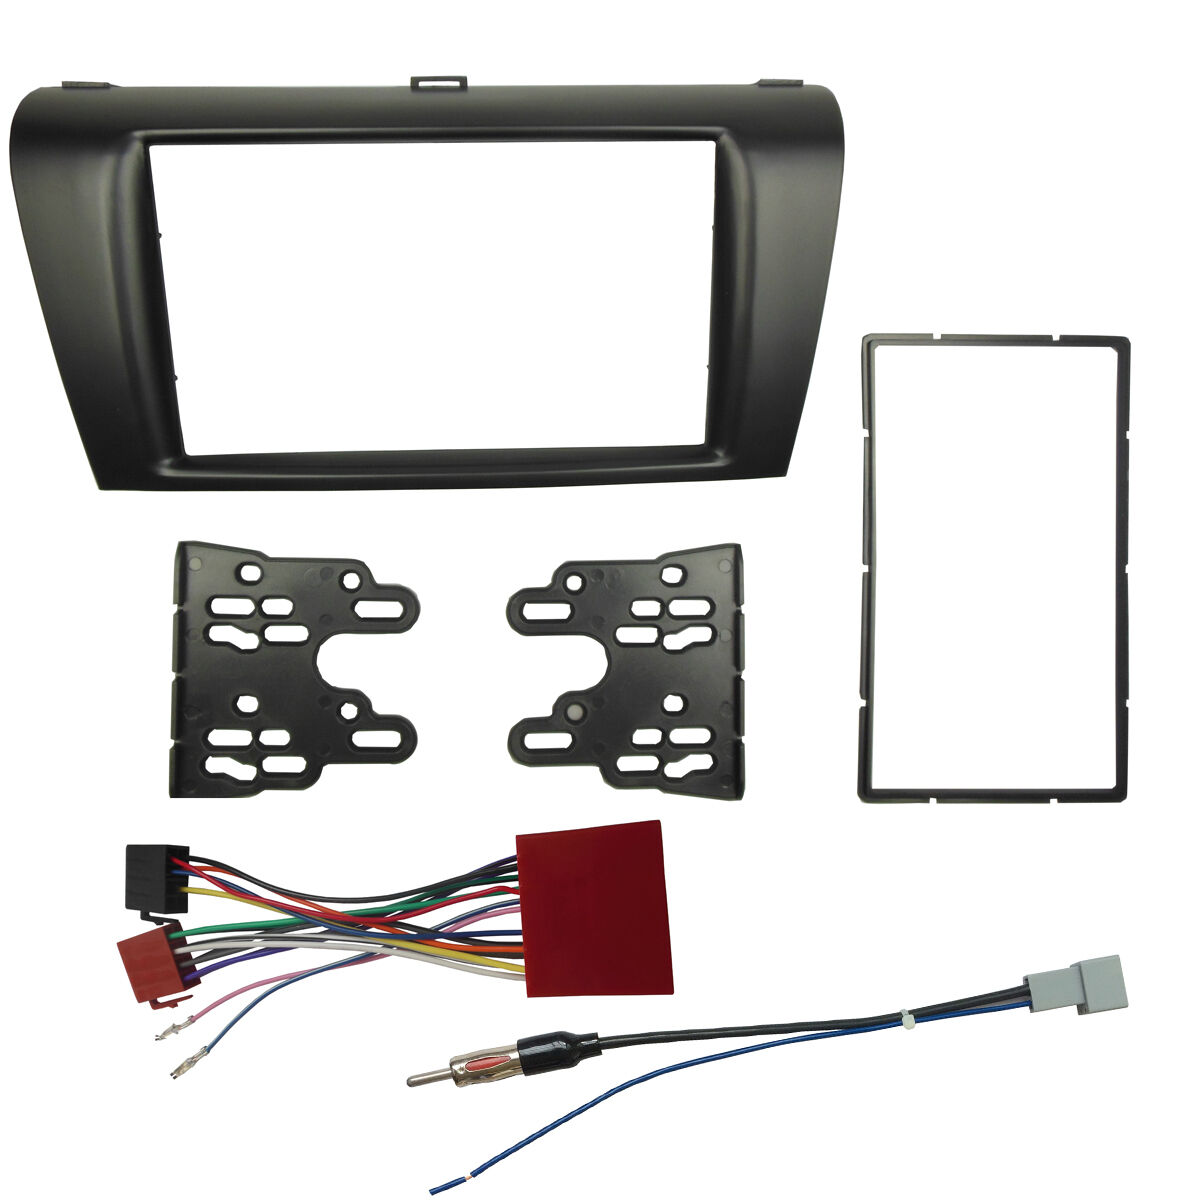 Saab Display Wiring Harness - Wiring Diagram Data on wire leads, wire clothing, wire antenna, wire nut, wire sleeve, wire holder, wire connector, wire ball, wire cap, wire lamp,